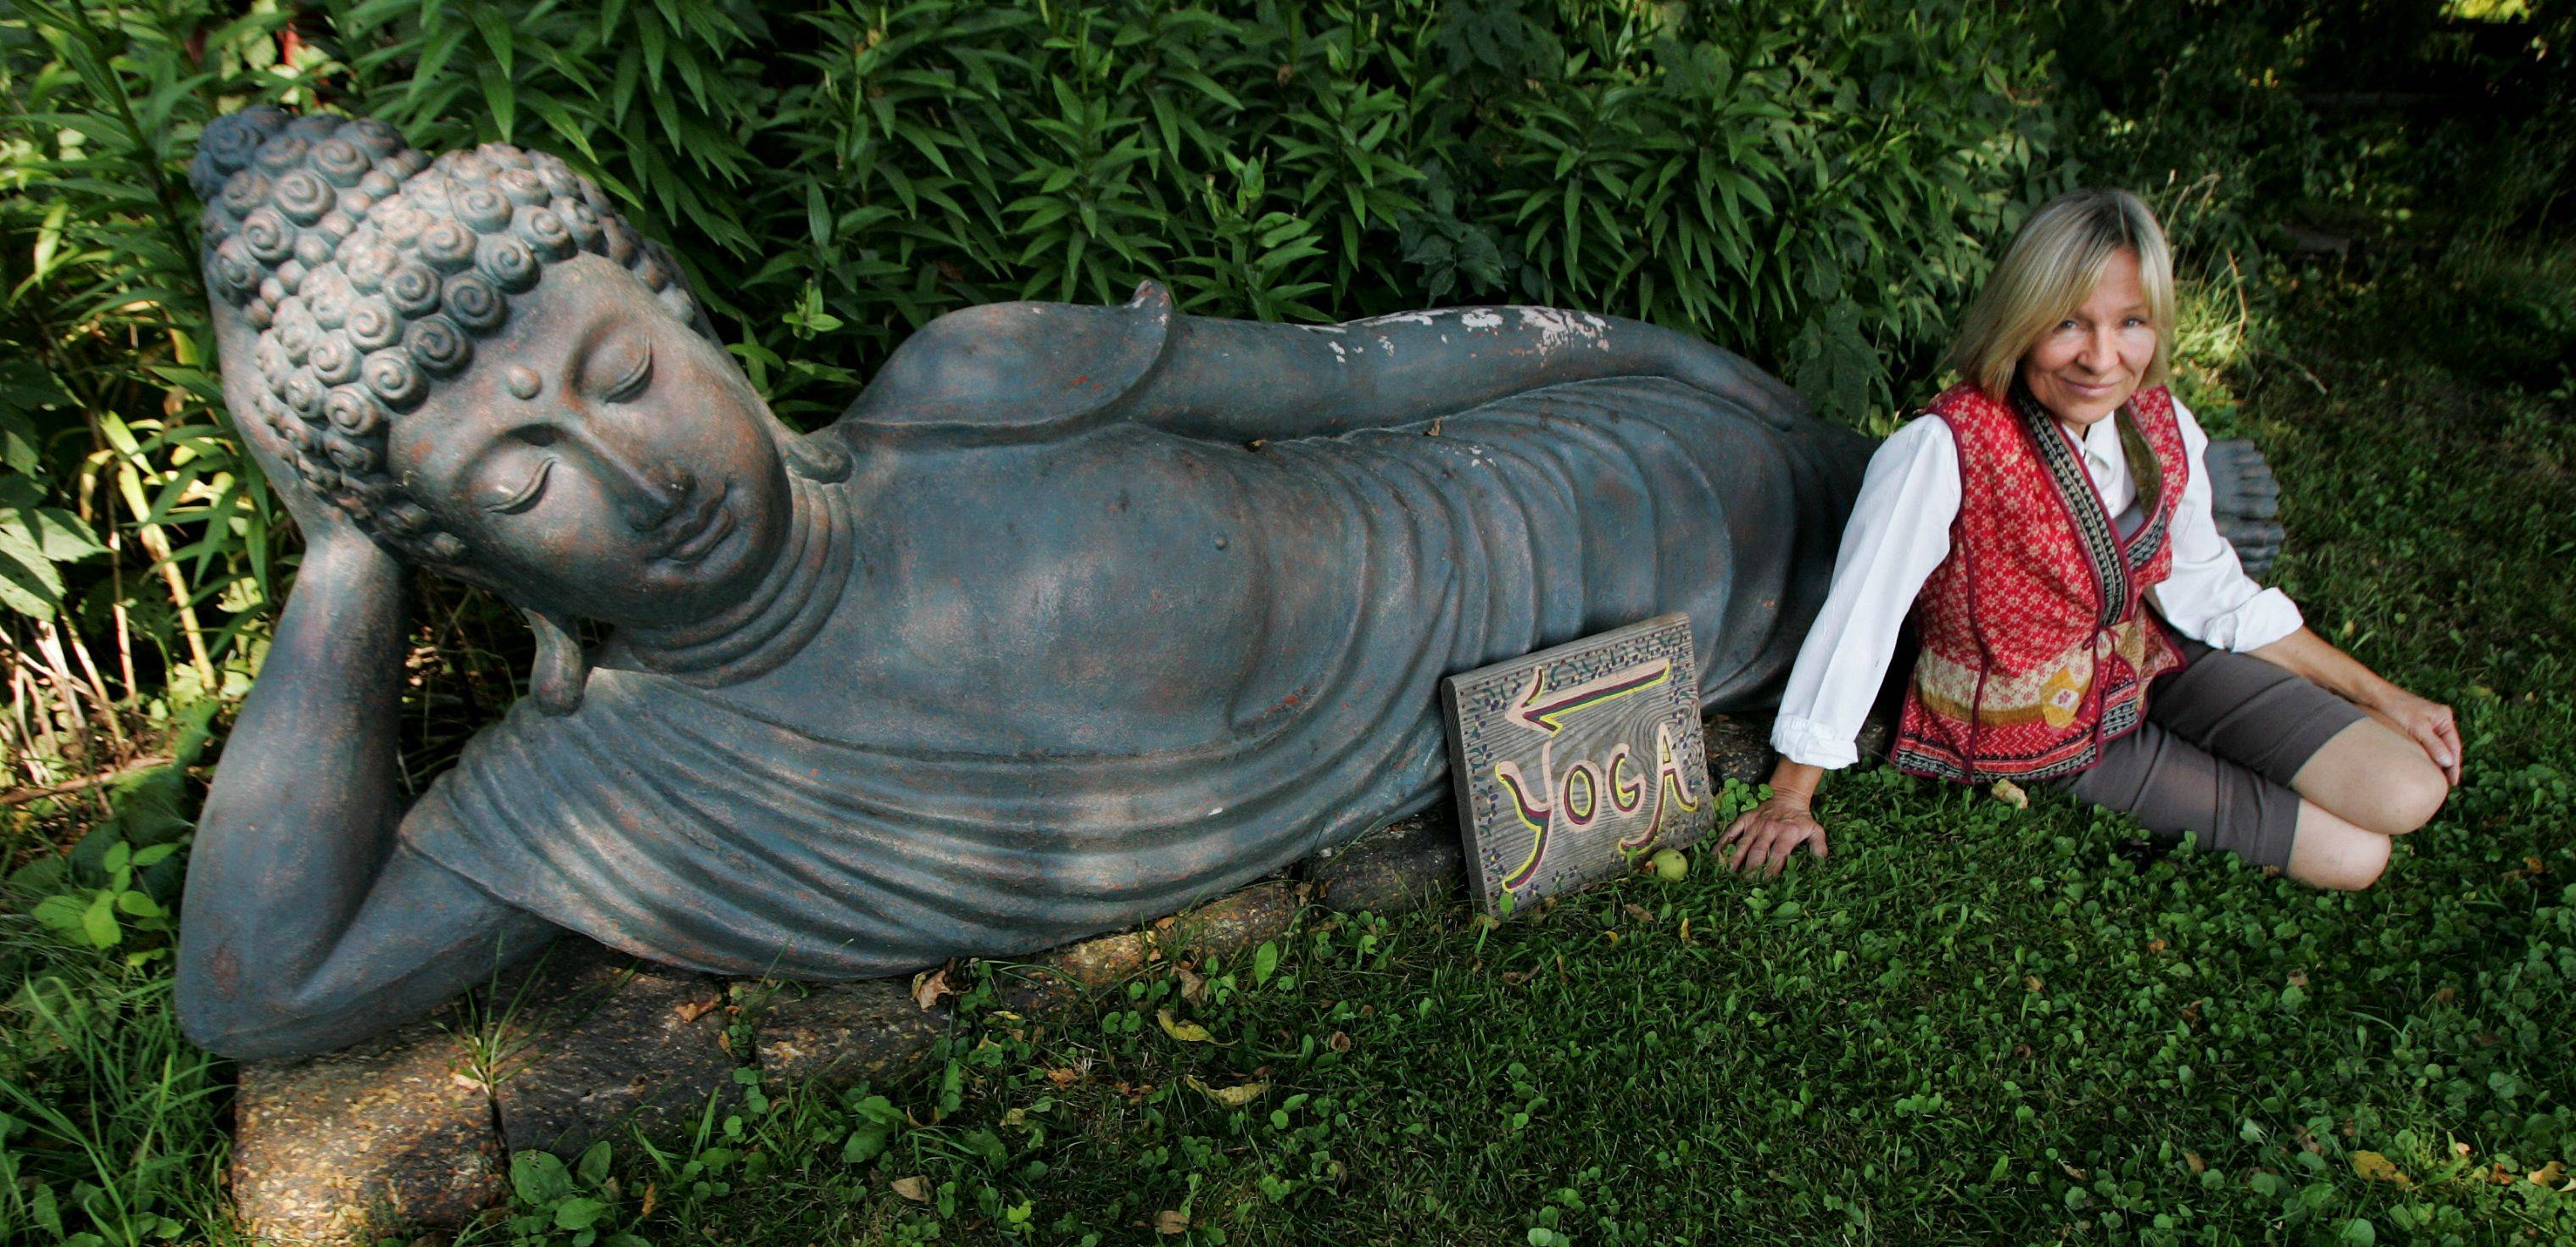 Relaxing with a reclining Buddha she brought home from one of her many adventures, Ginger Blossom has turned her Gauger family farm in Richmond into the Ginger Blossom import business that sells fair-trade products from around the globe.